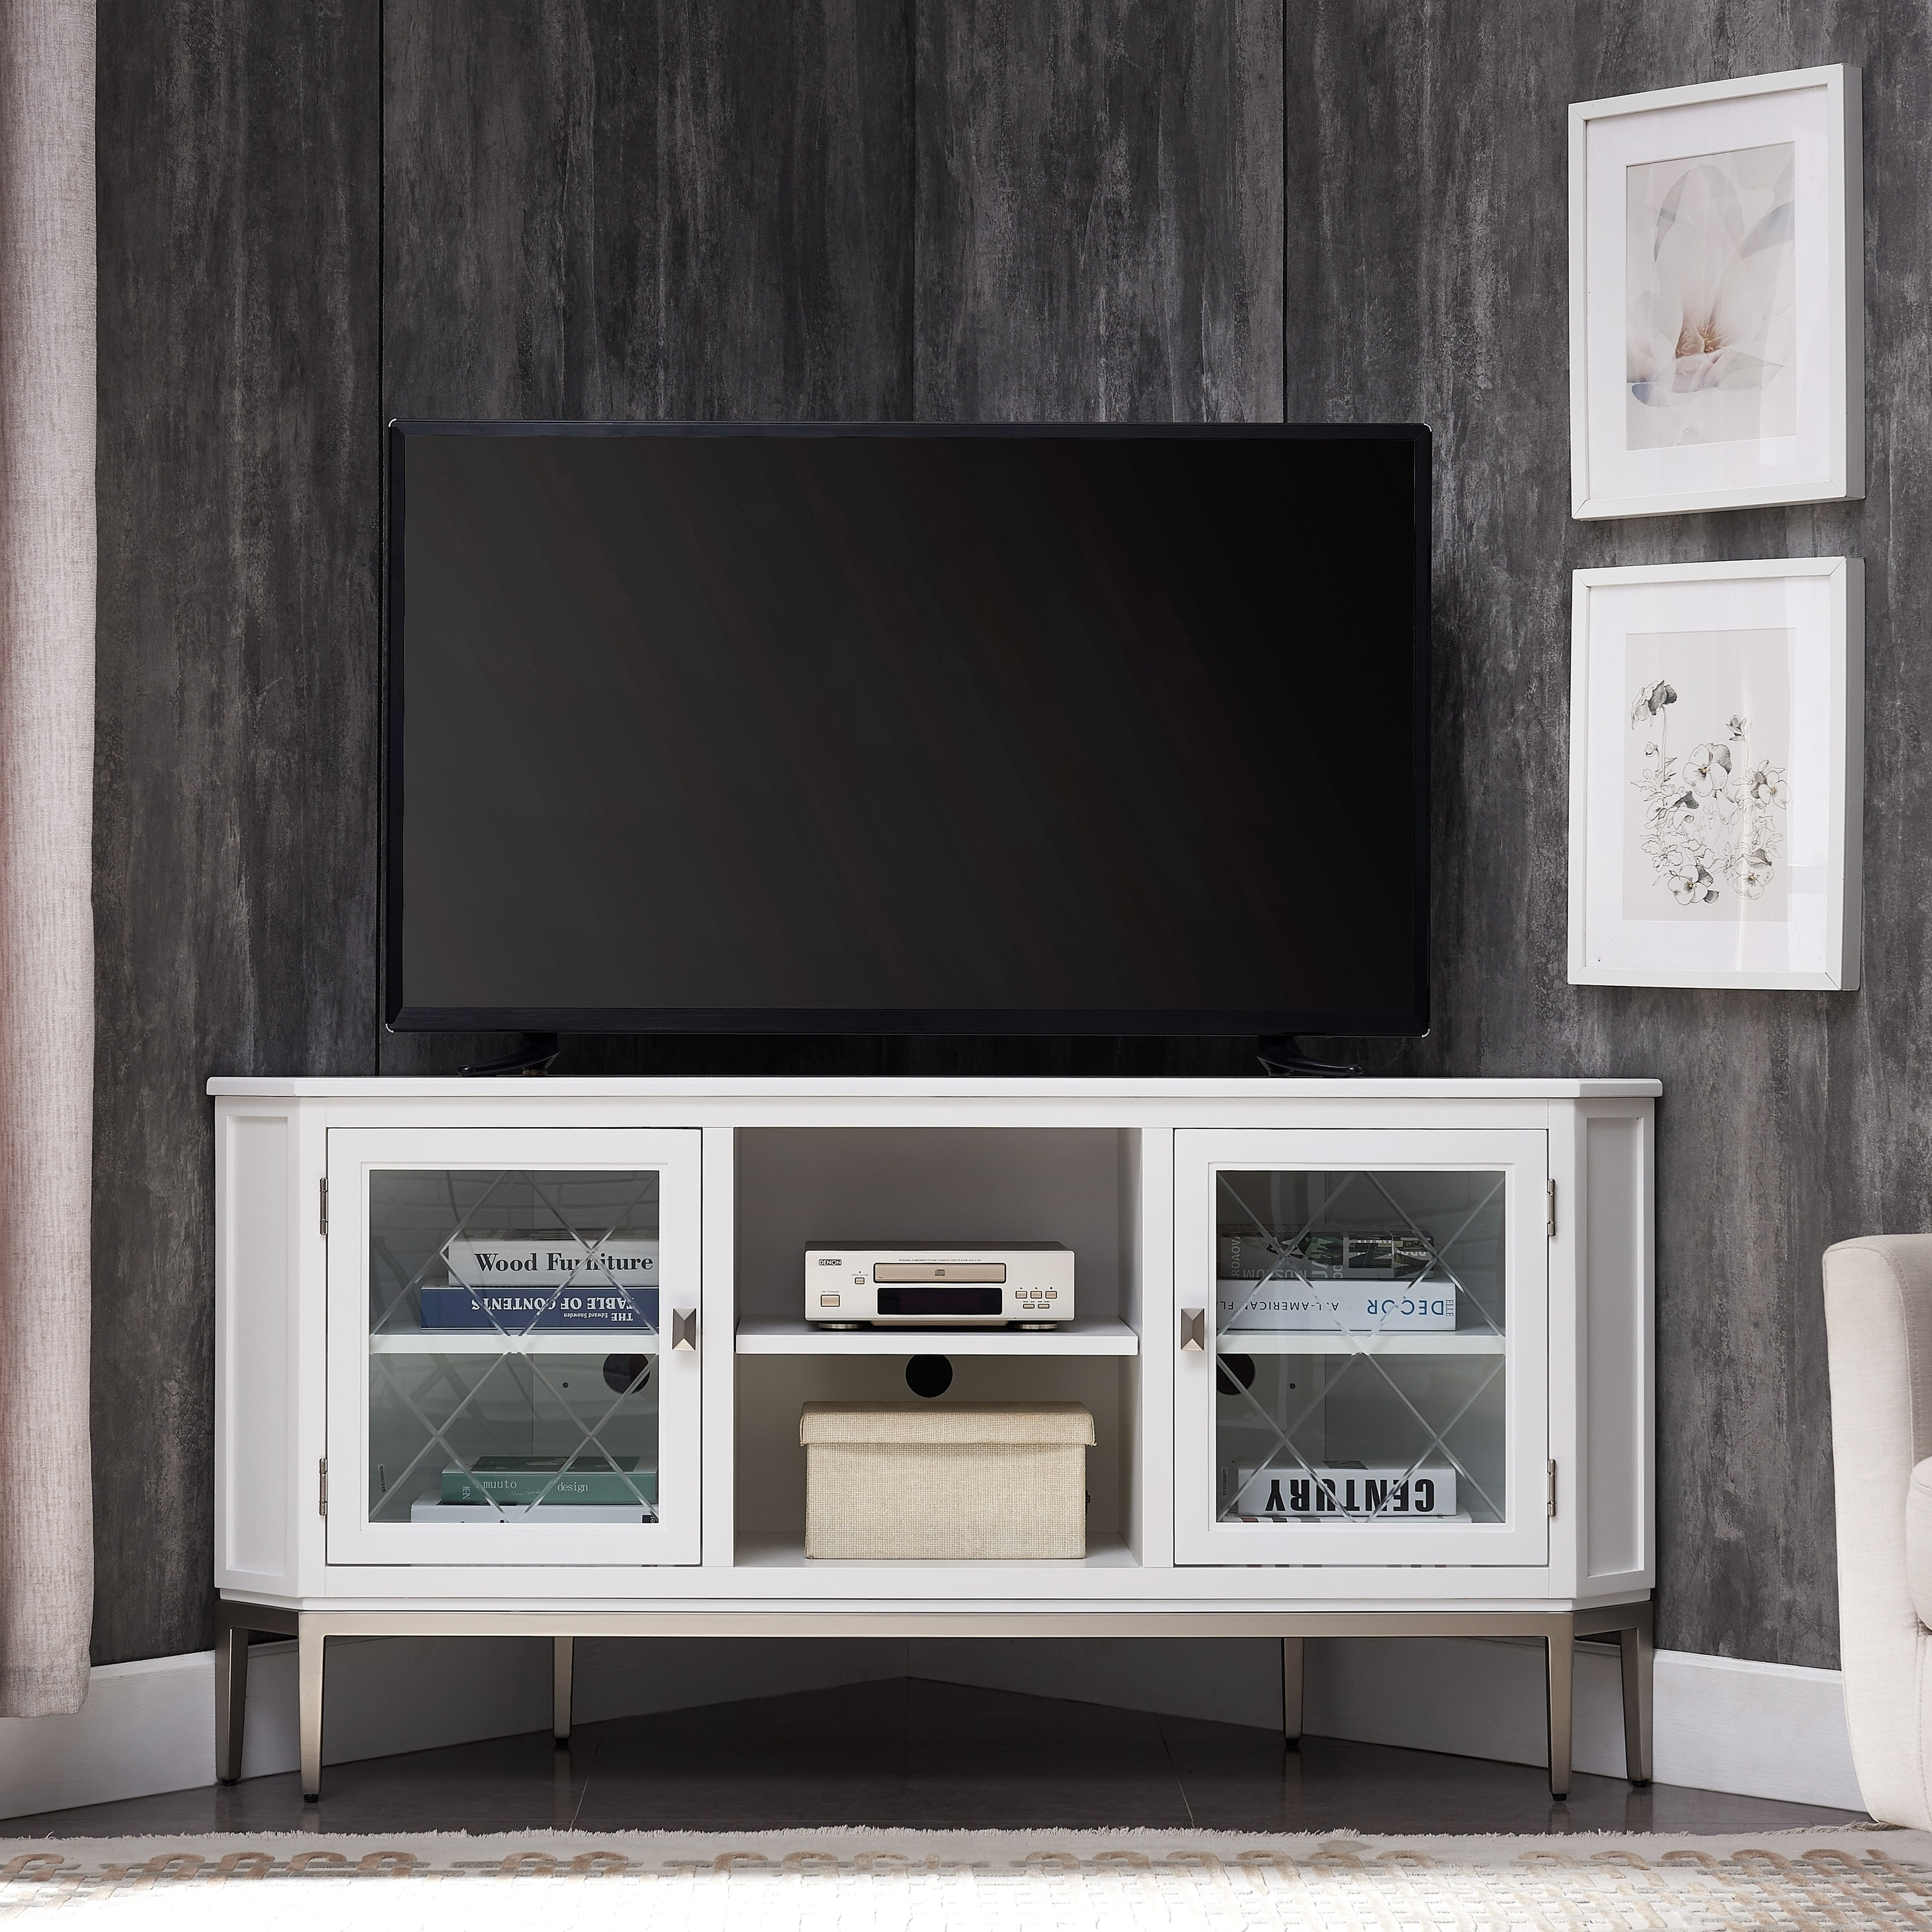 Shop White Solid Wood Pewter Steel 57 Inch Corner Tv Console With Smoke Grey Interior Overstock 30267828